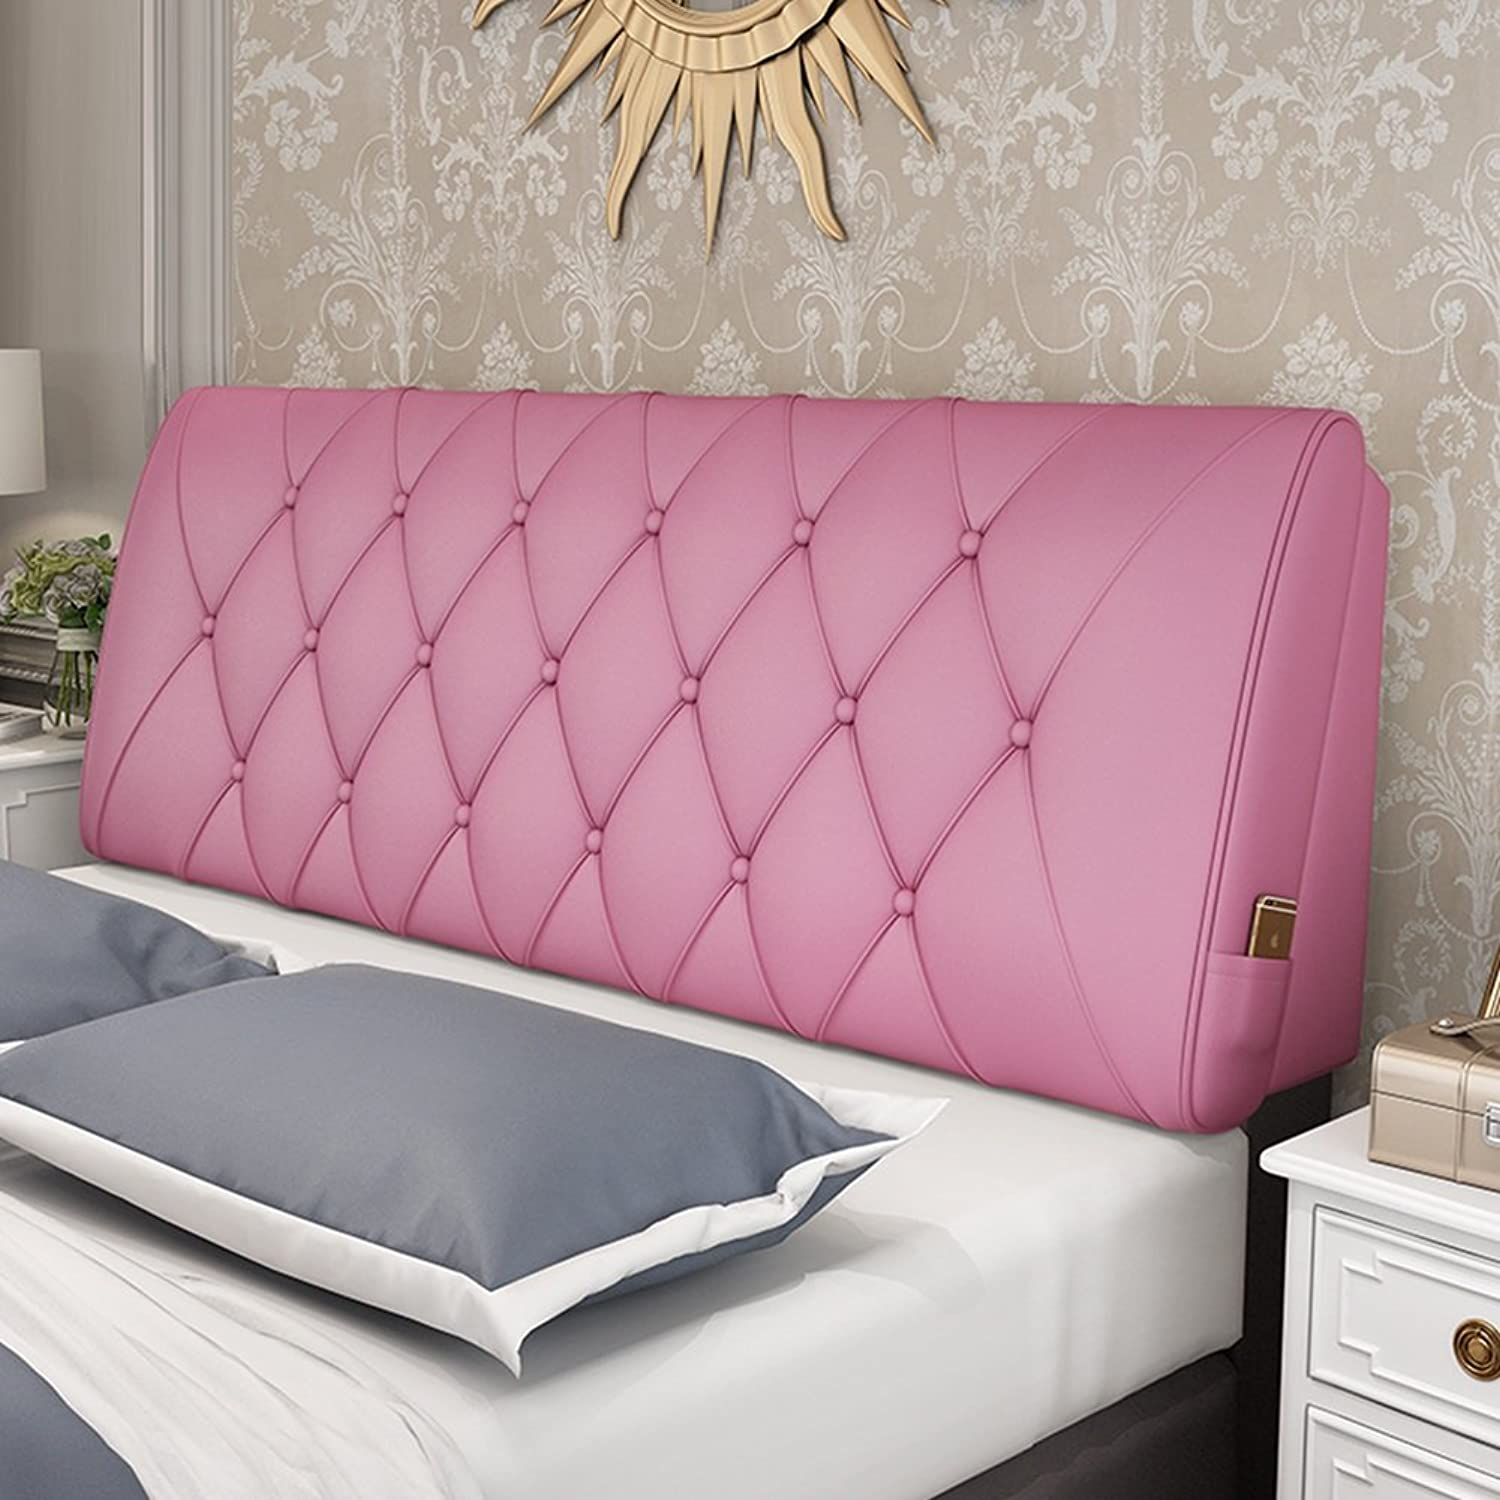 WENZHE Upholstered Fabric Headboard Bedside Cushion Pads Cover Bed Wedges Backrest Waist Pad Soft Case Double Bed Sofa Pillow Multifunction Large Back Pad Simple Fashion, There Is Headboard   No Headboard, 6 colors, 10 Sizes Optional ( color   pink red ,